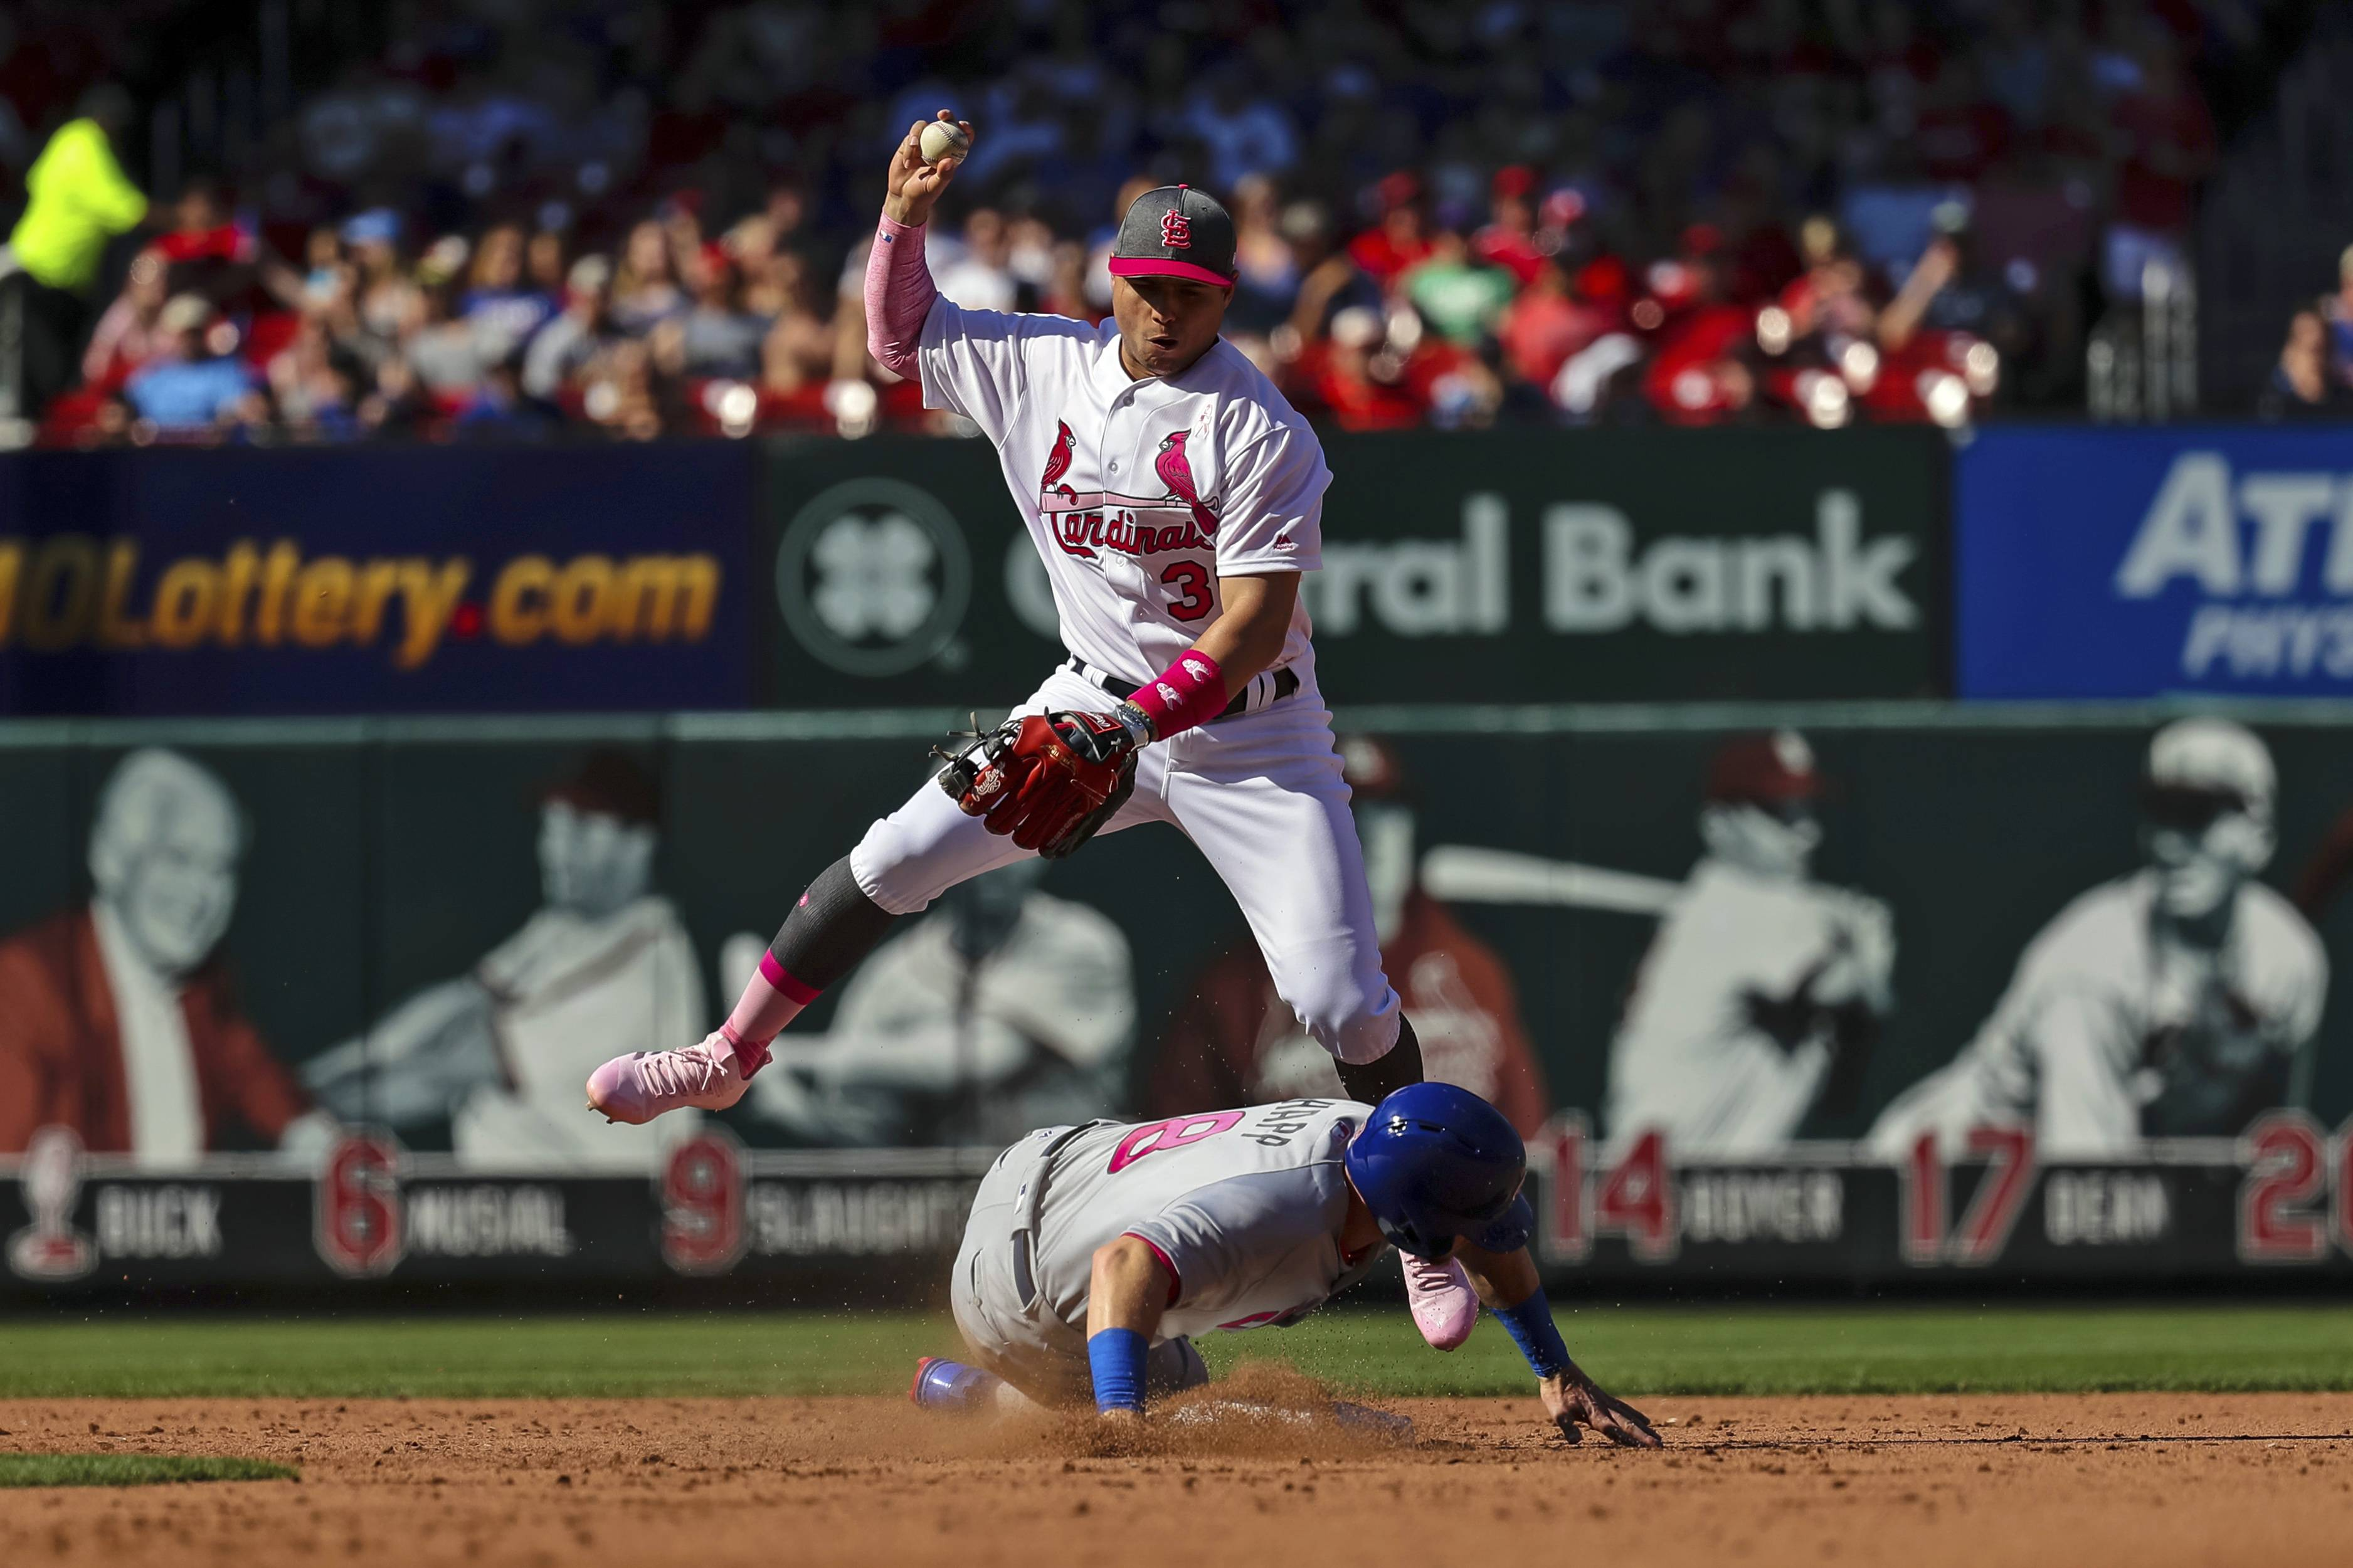 St. Louis Cardinals shortstop Aledmys Diaz, top, leaps into the air as Chicago Cubs' Ian Happ, bottom, slides in to break up a double play in the fifth inning of a baseball game, Saturday, May 13, 2017, in St. Louis. The Cubs' Anthony Rizzo was called out at first due to slide interference by Happ,